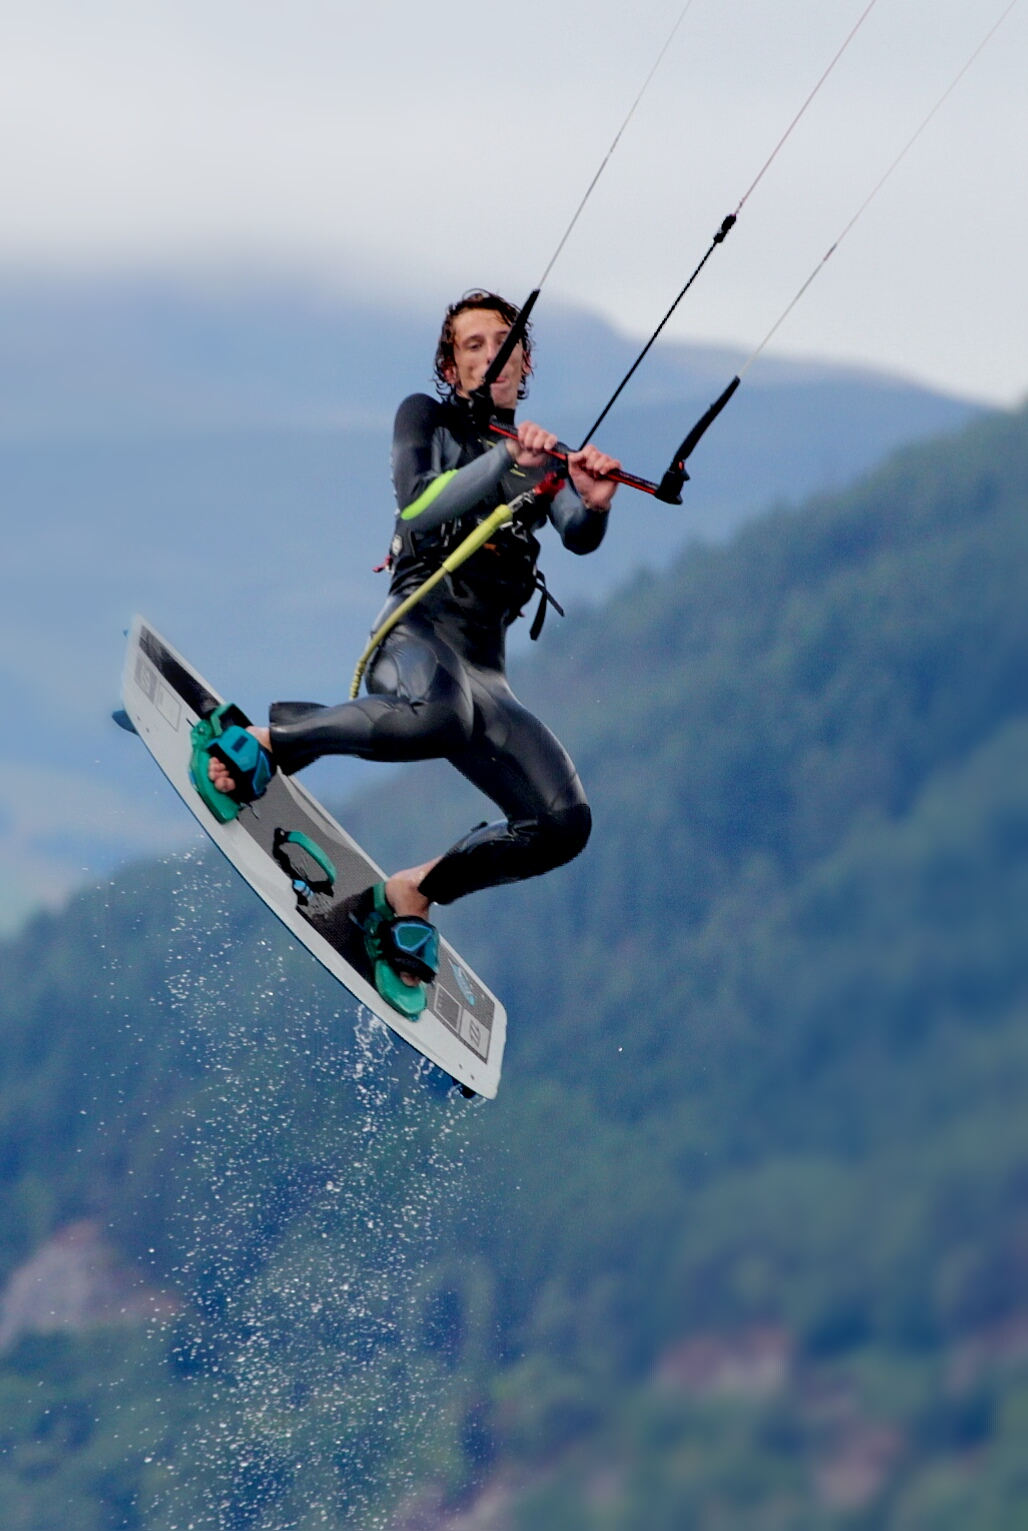 Kite surfer loch ness.